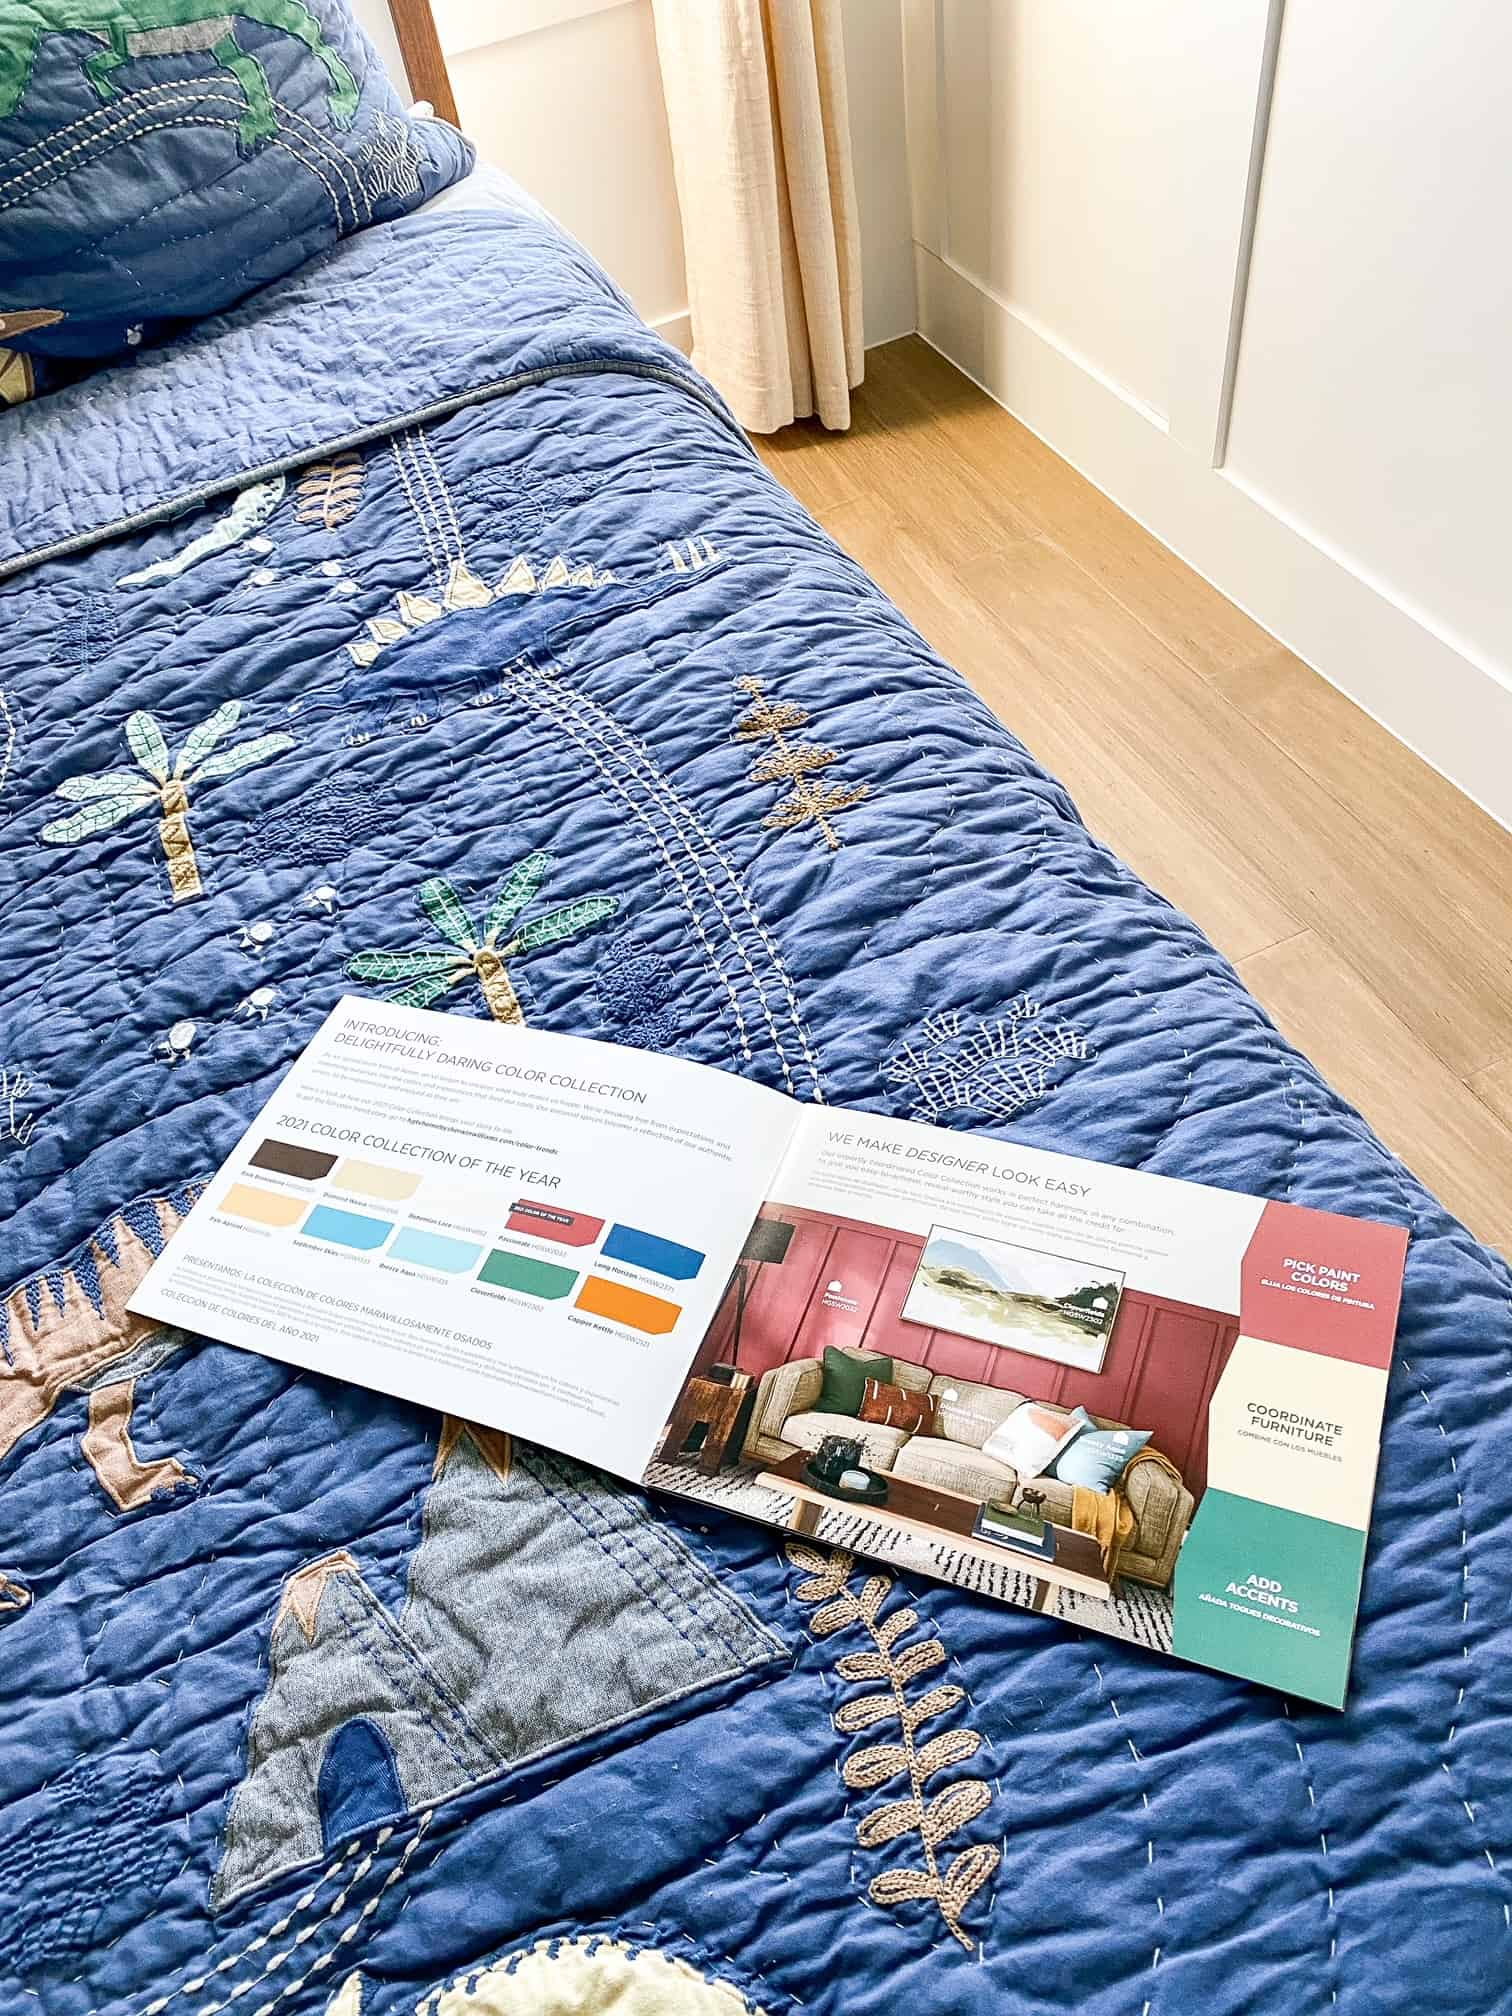 Bedroom Paint Colors by popular Dallas life and style blog, Glamorous Versatility: image of a paint catalogue on a bed with dinosaur bedding.